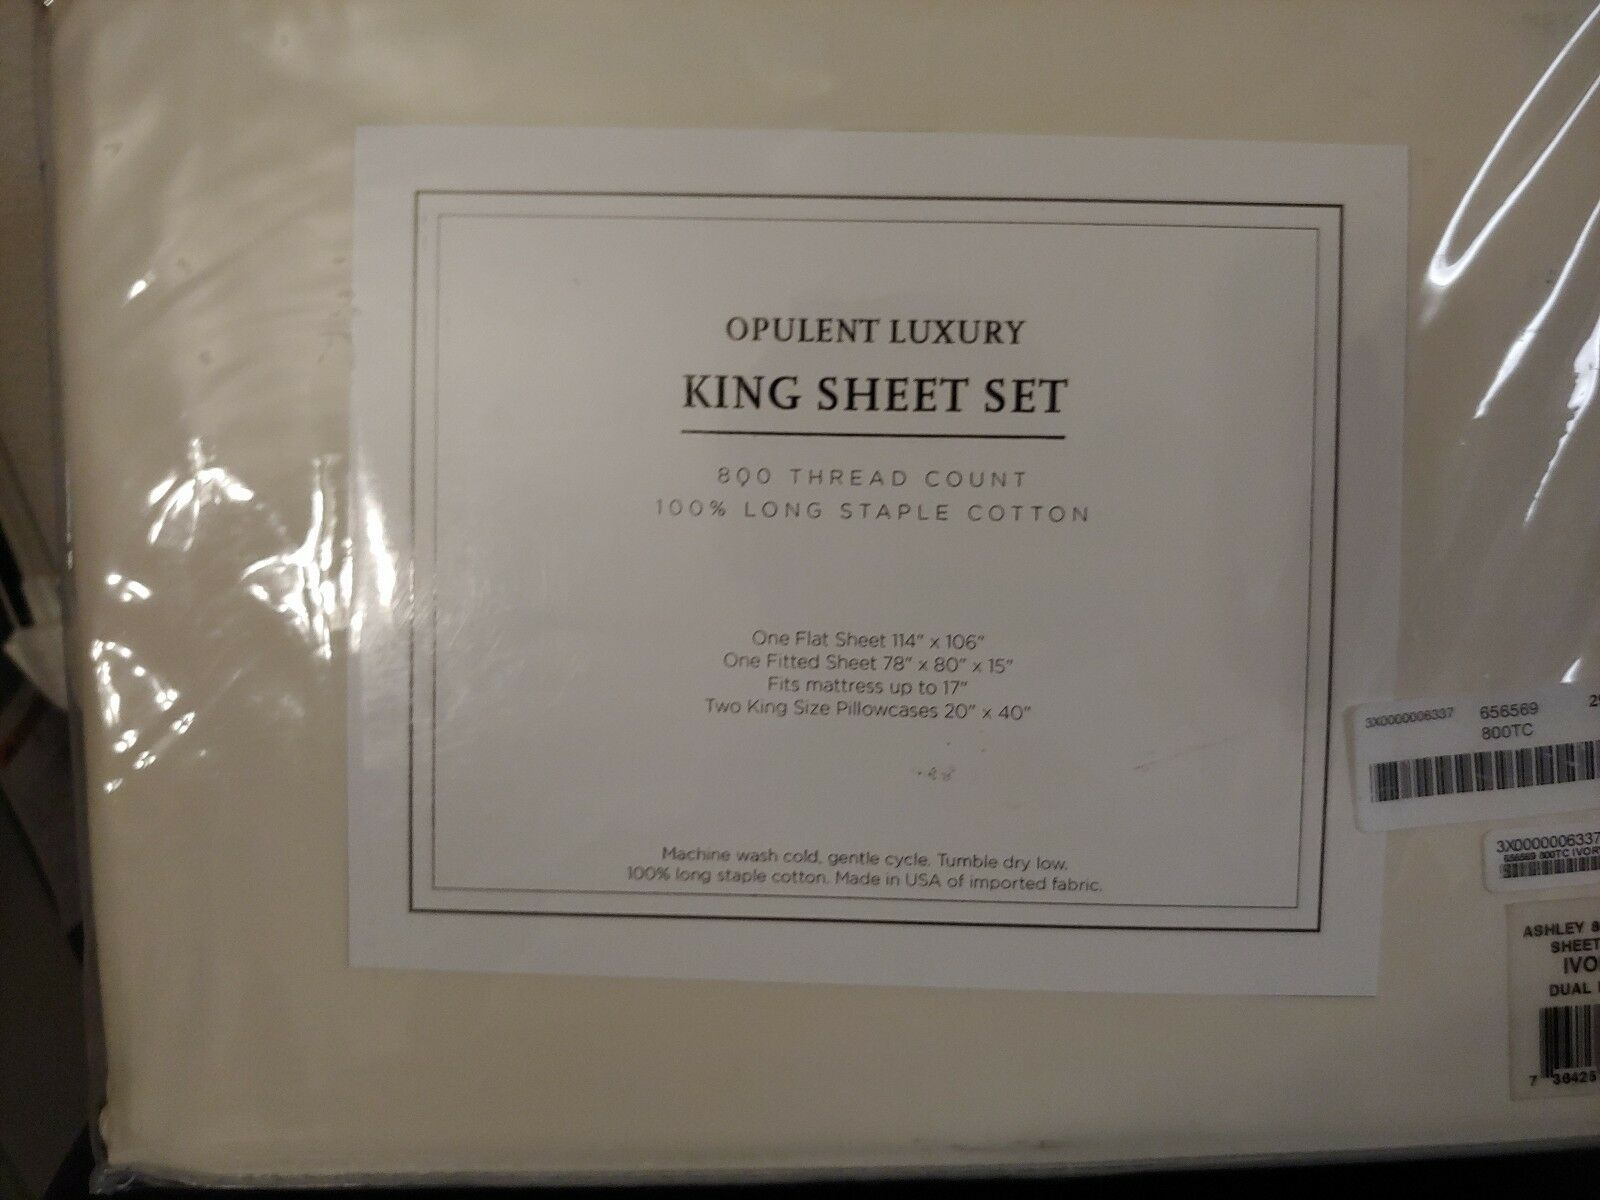 Ivory colord 800 Thread Count King Sized Bedsheets, Never been Opened